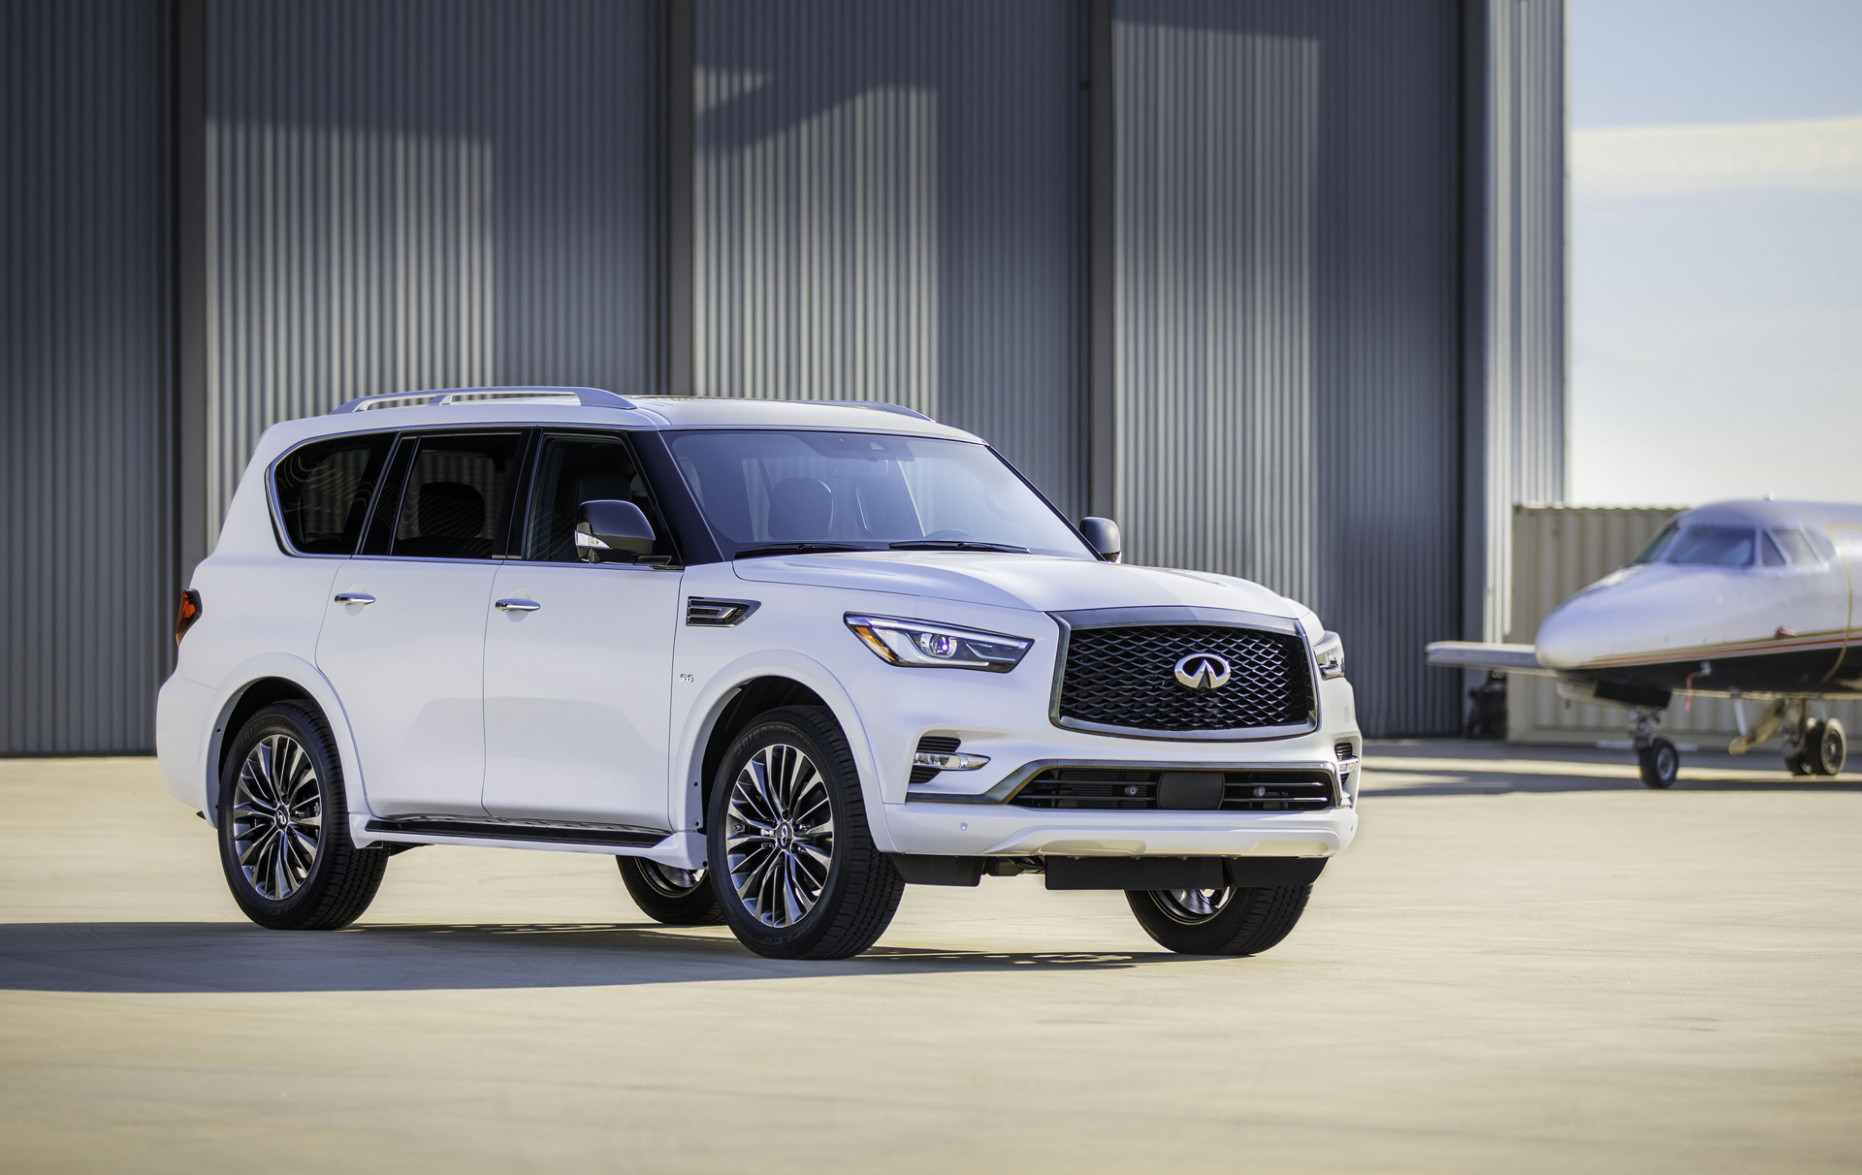 Release When Does The 2022 Infiniti Qx80 Come Out